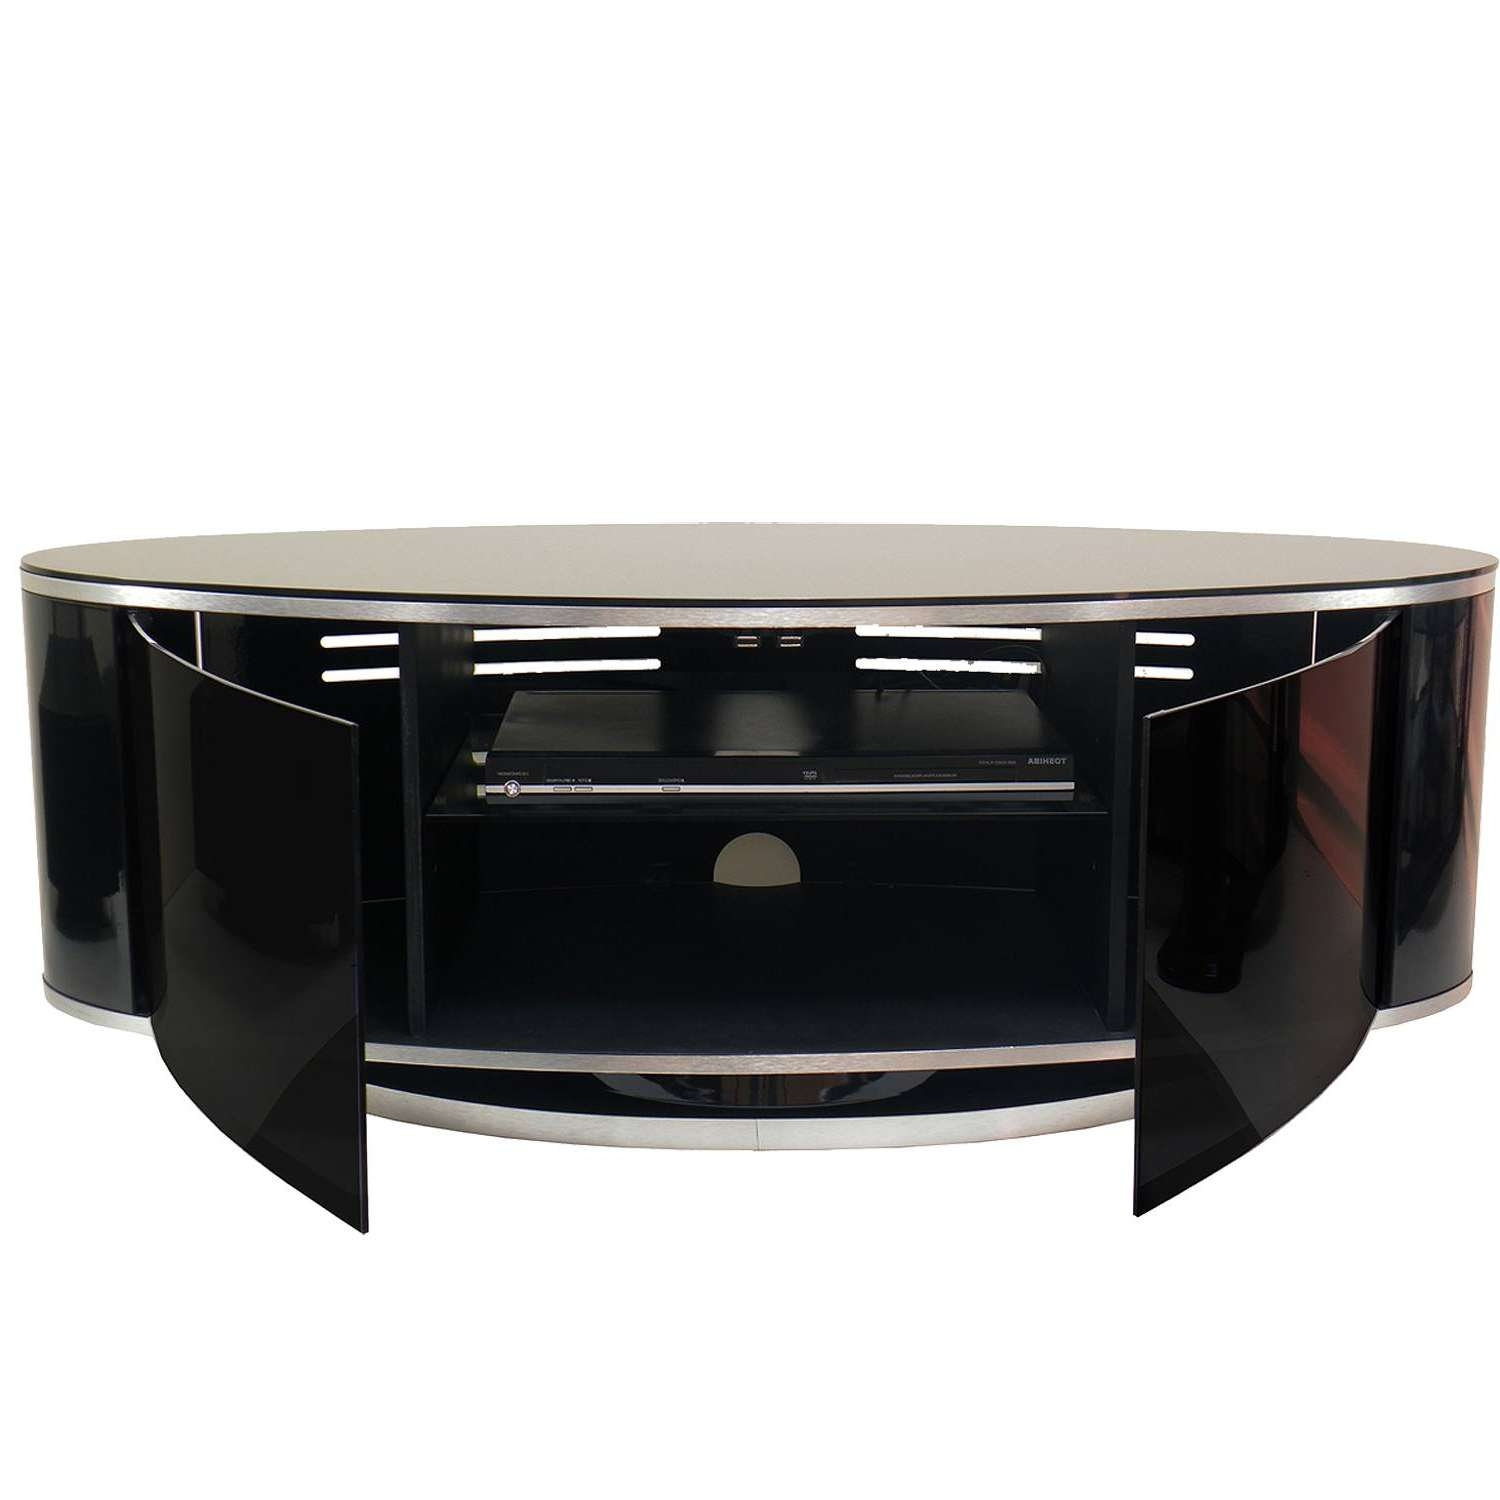 "Mda Designs Luna Av High Gloss Black Oval Tv Cabinet Up To 55"" Tvs Within Black Oval Tv Stands (View 6 of 15)"